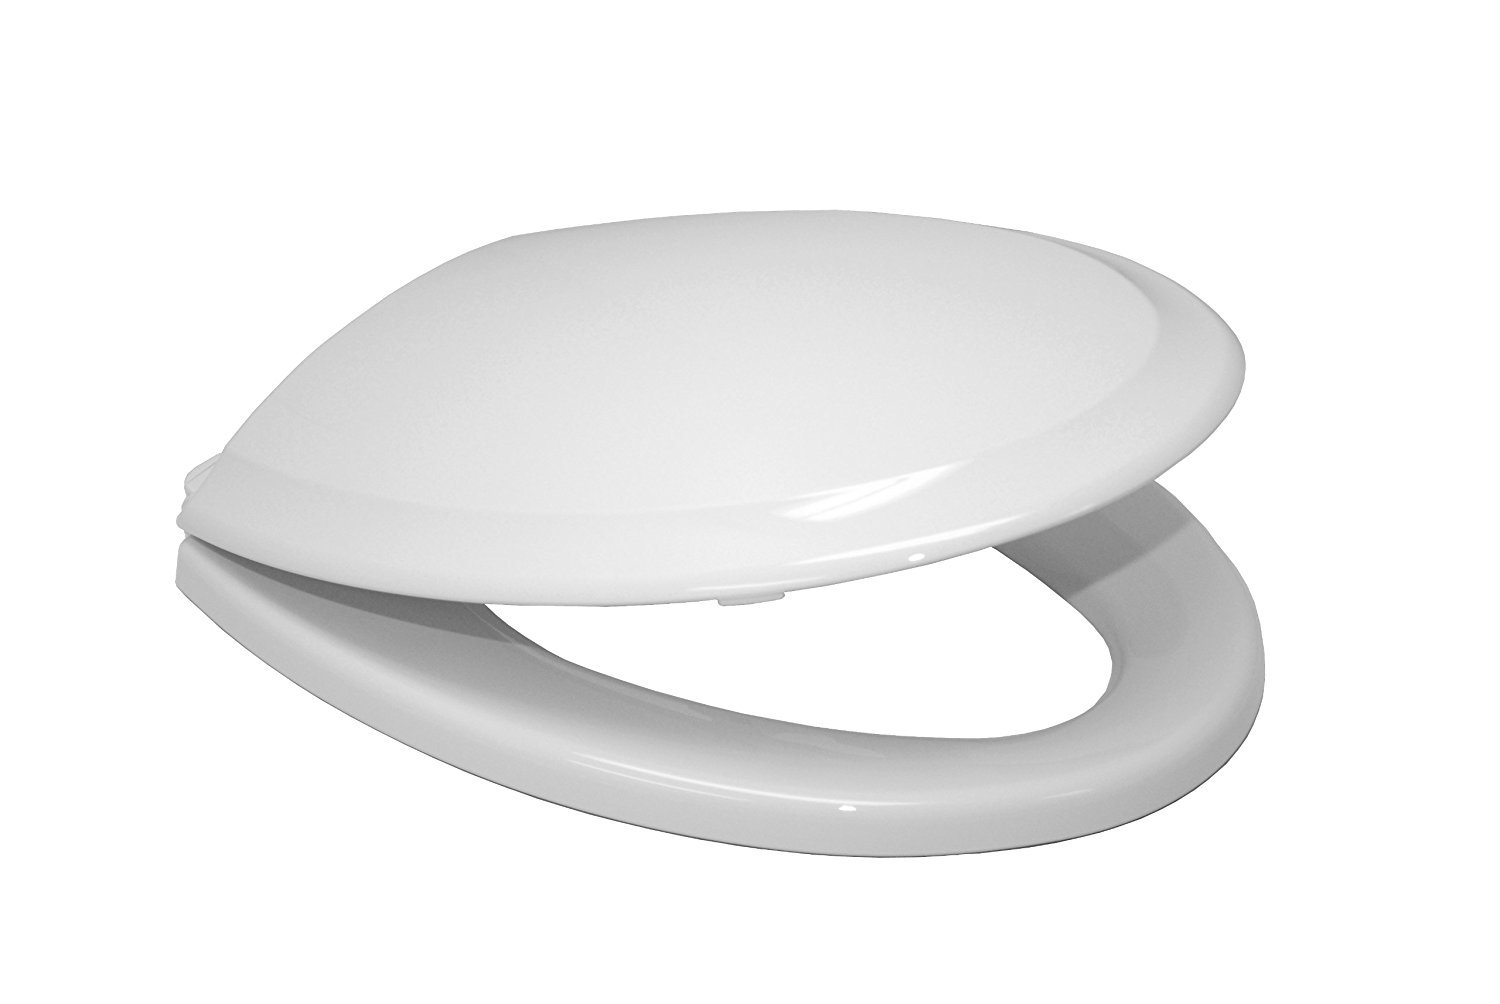 Toto SS224#01 Guinevere Elongated Closed-Front Toilet Seat and Lid with SoftClos